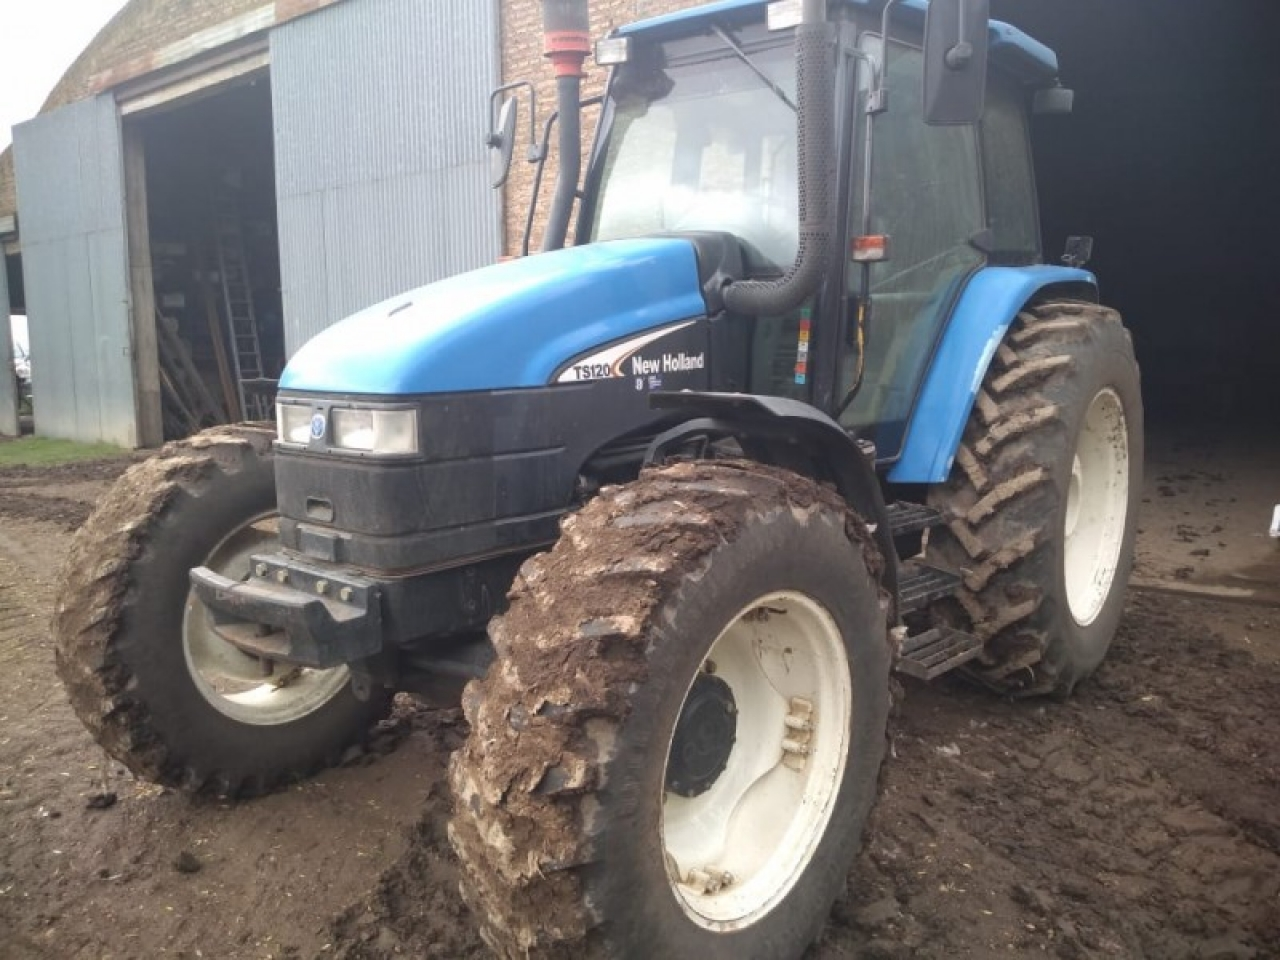 NEW HOLLAND TS 120 DT NEW HOLLAND